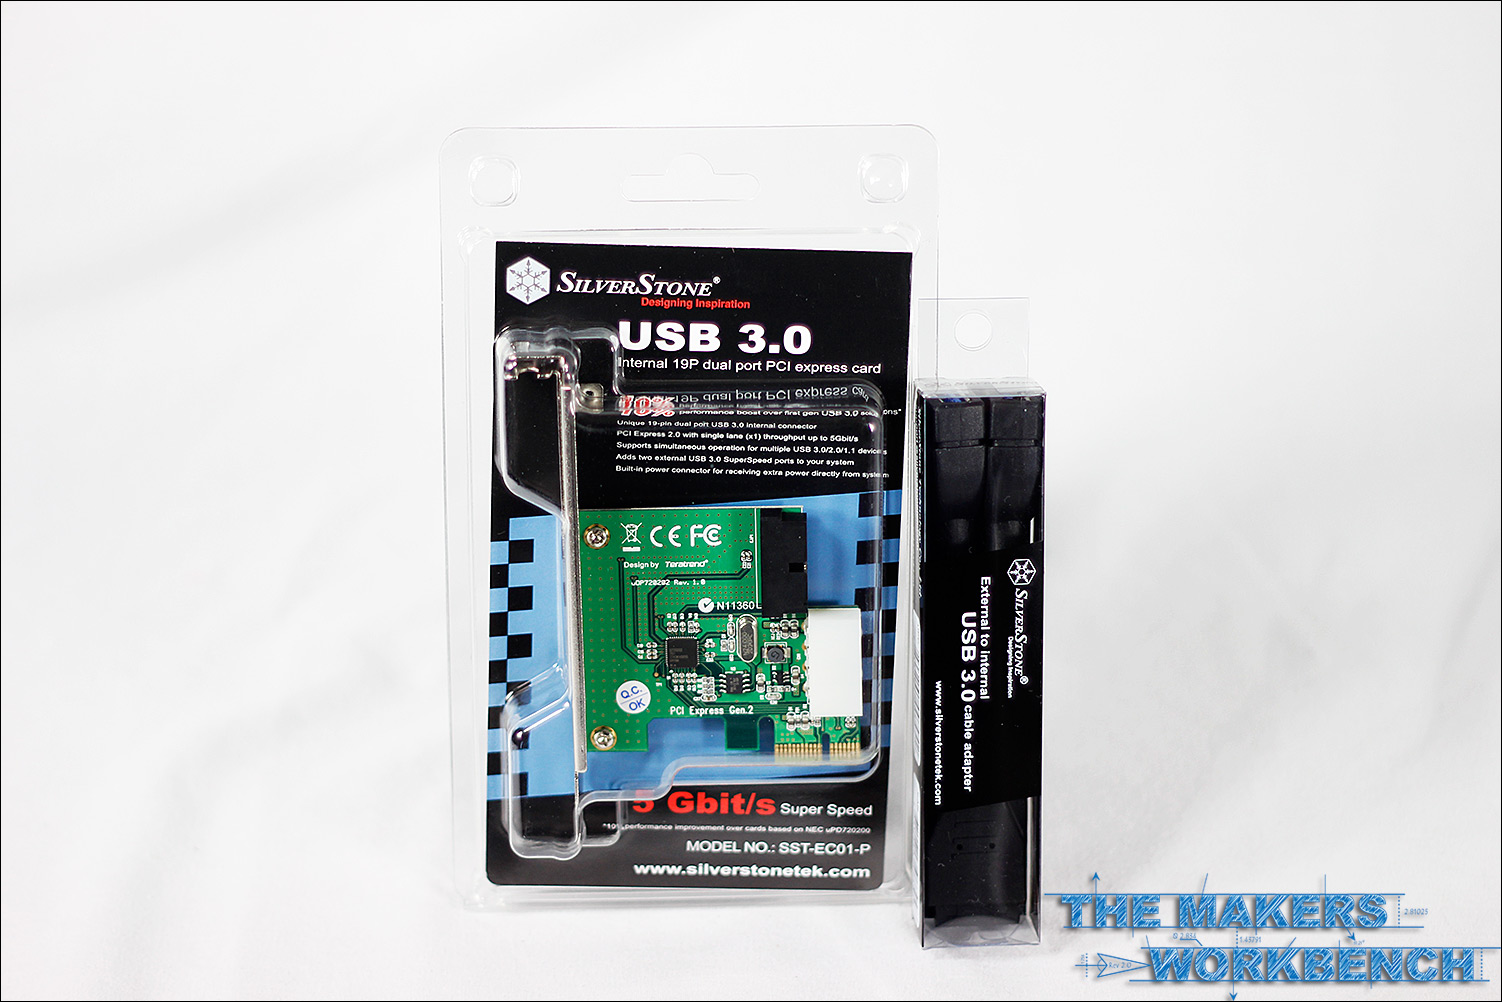 Silverstone USB 3.0 Expansion Card ECO1-P